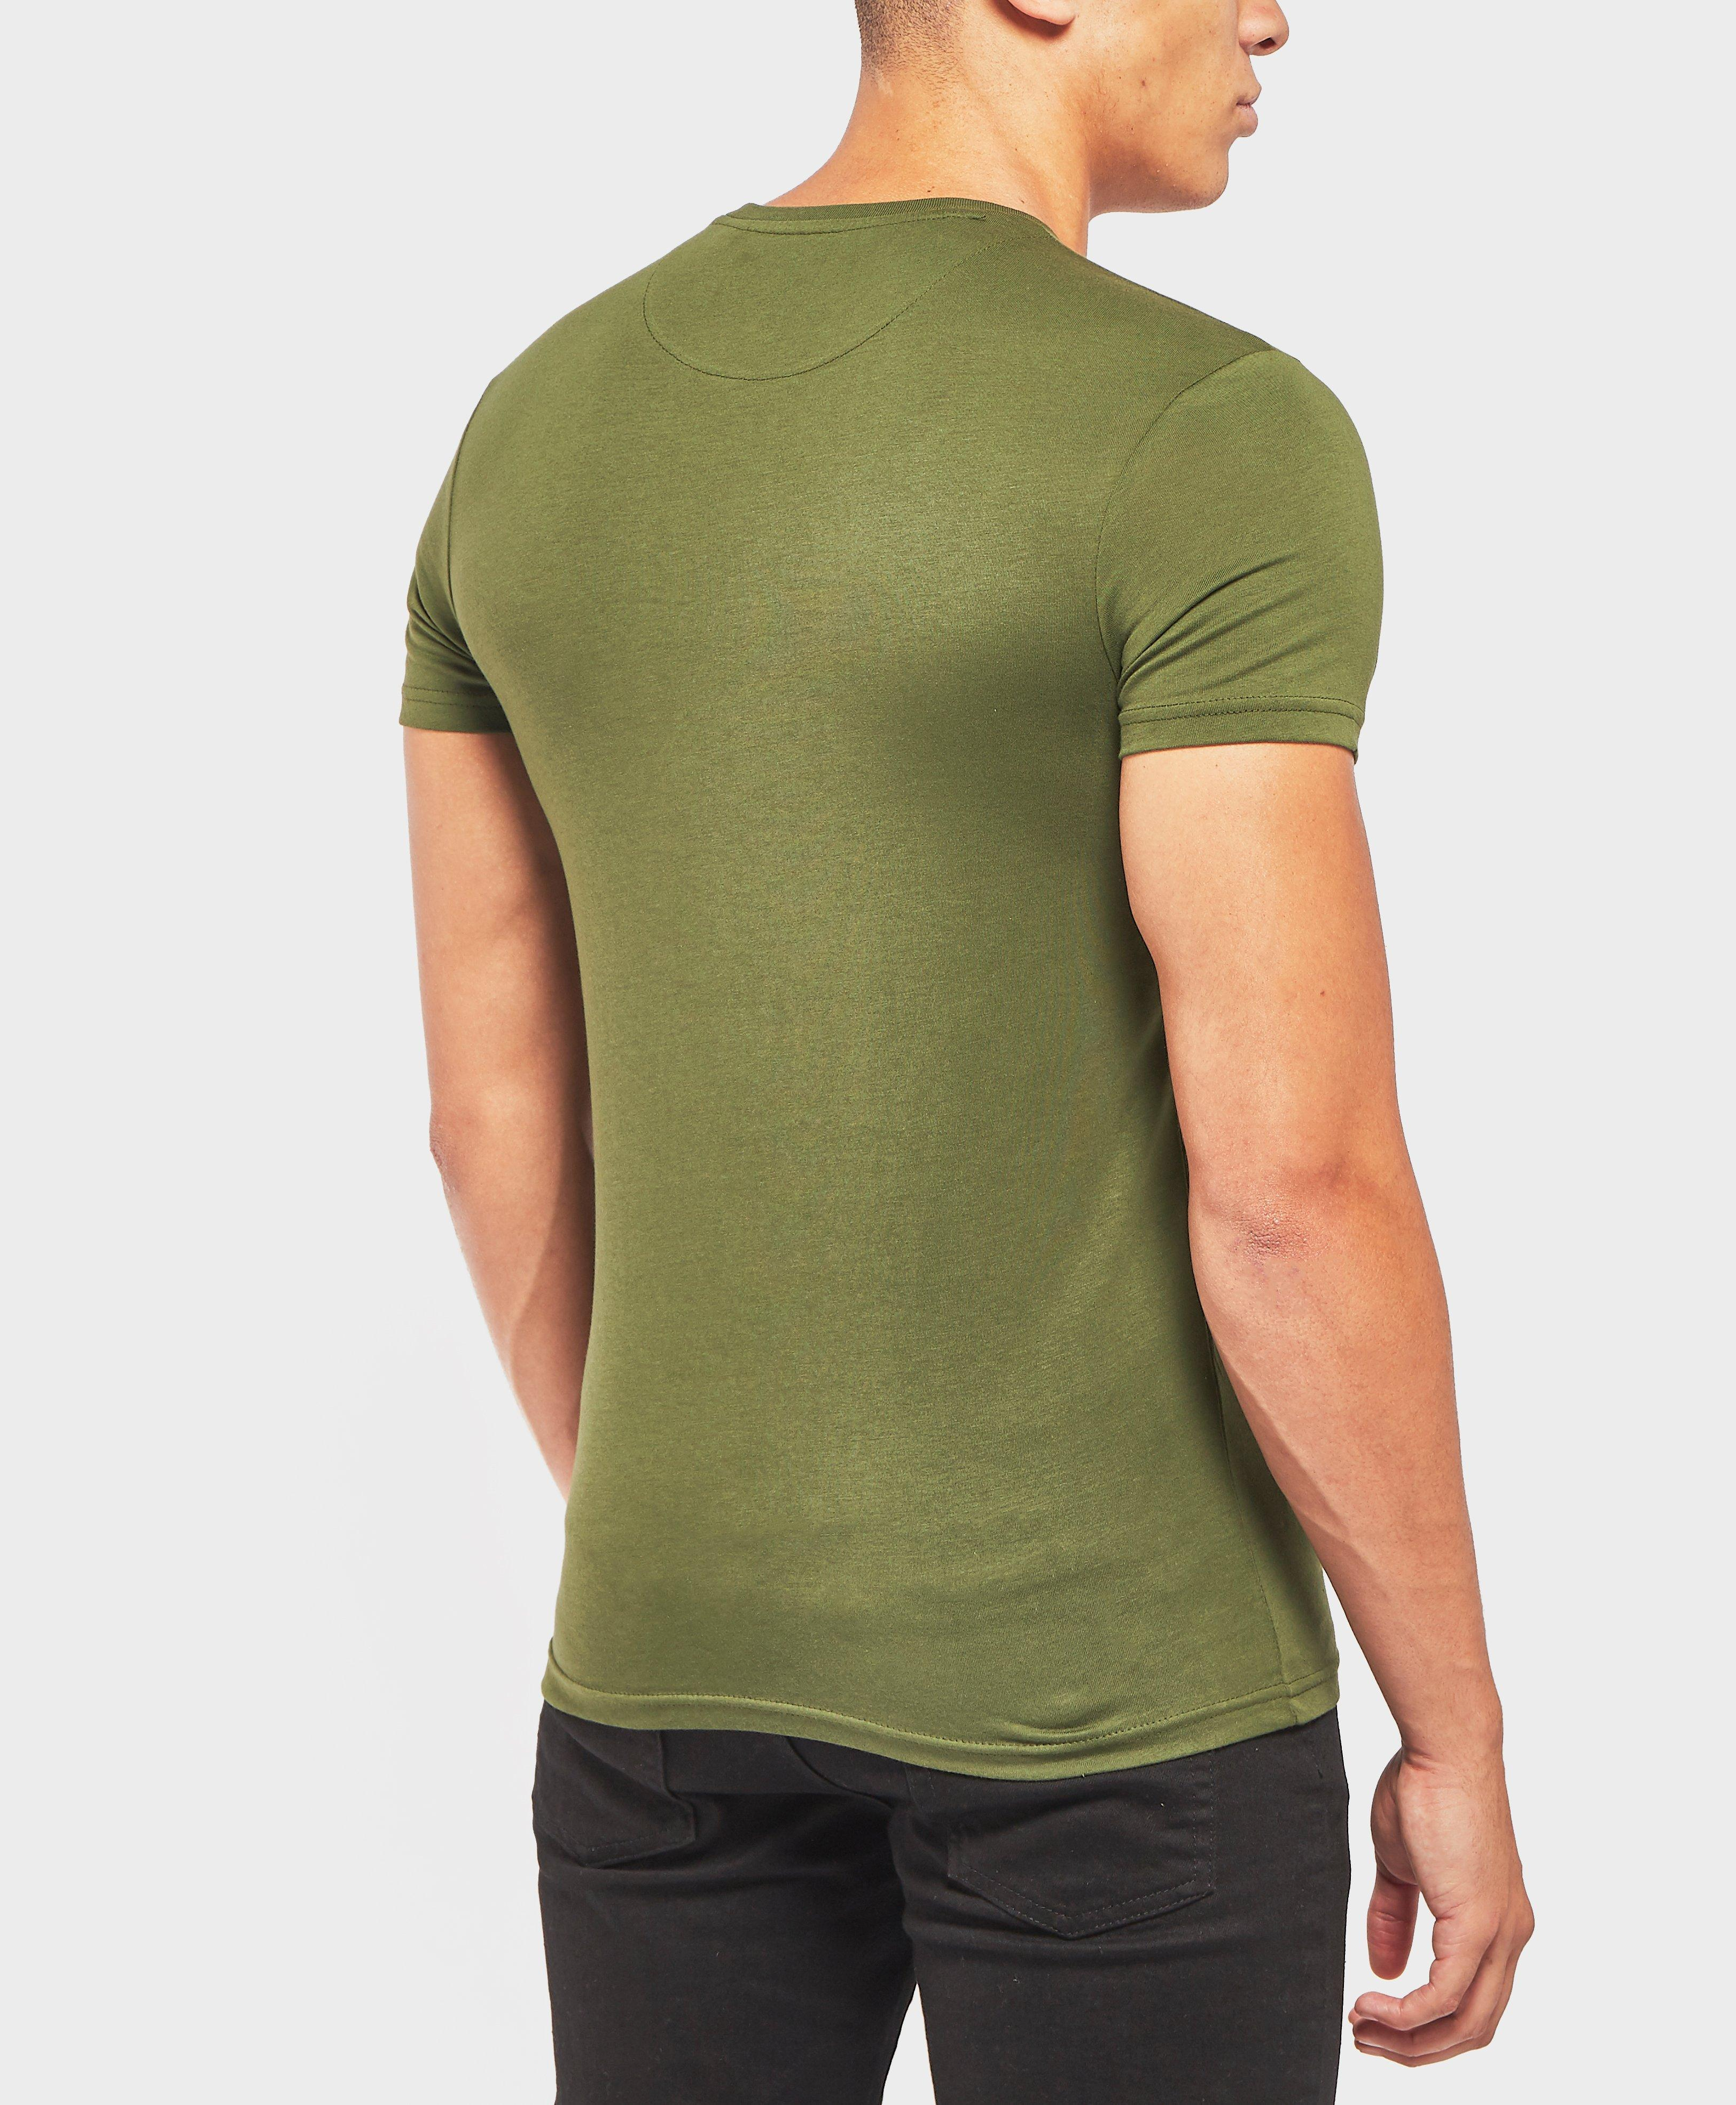 7ebd25efb Lyle & Scott Lyle And Scott Crew Neck T-shirt in Green for Men - Save  20.83333333333333% - Lyst